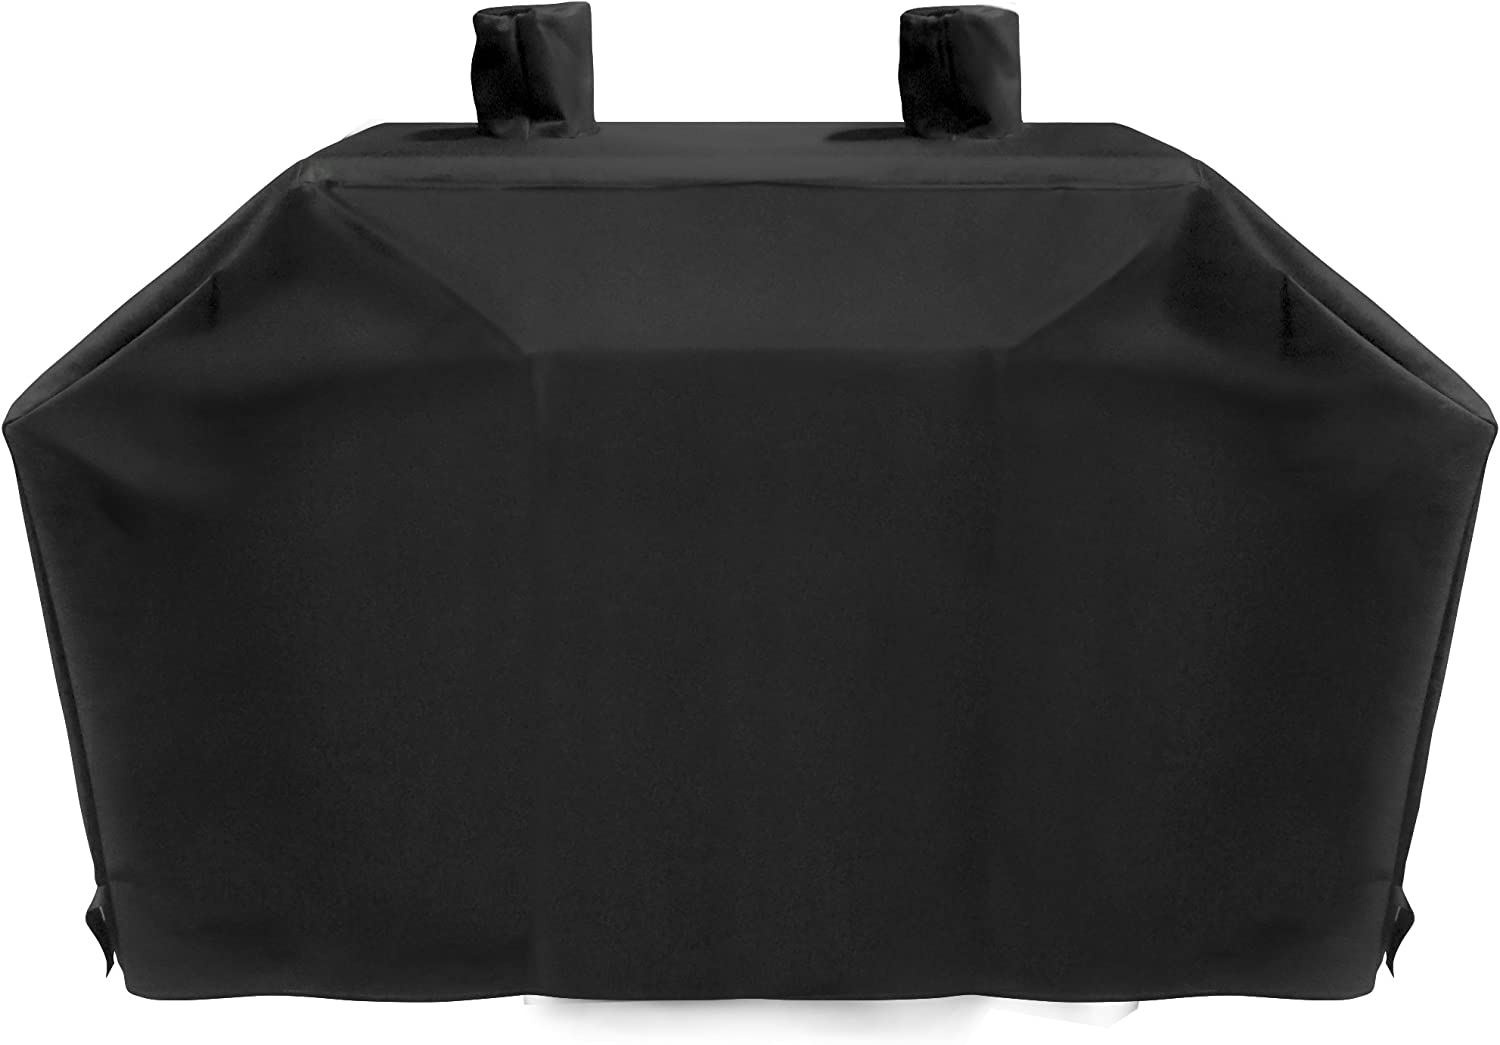 Amazon Com Masterbuilt Gc3618 Grill Cover 66 X 24 X 47 Black Garden Outdoor